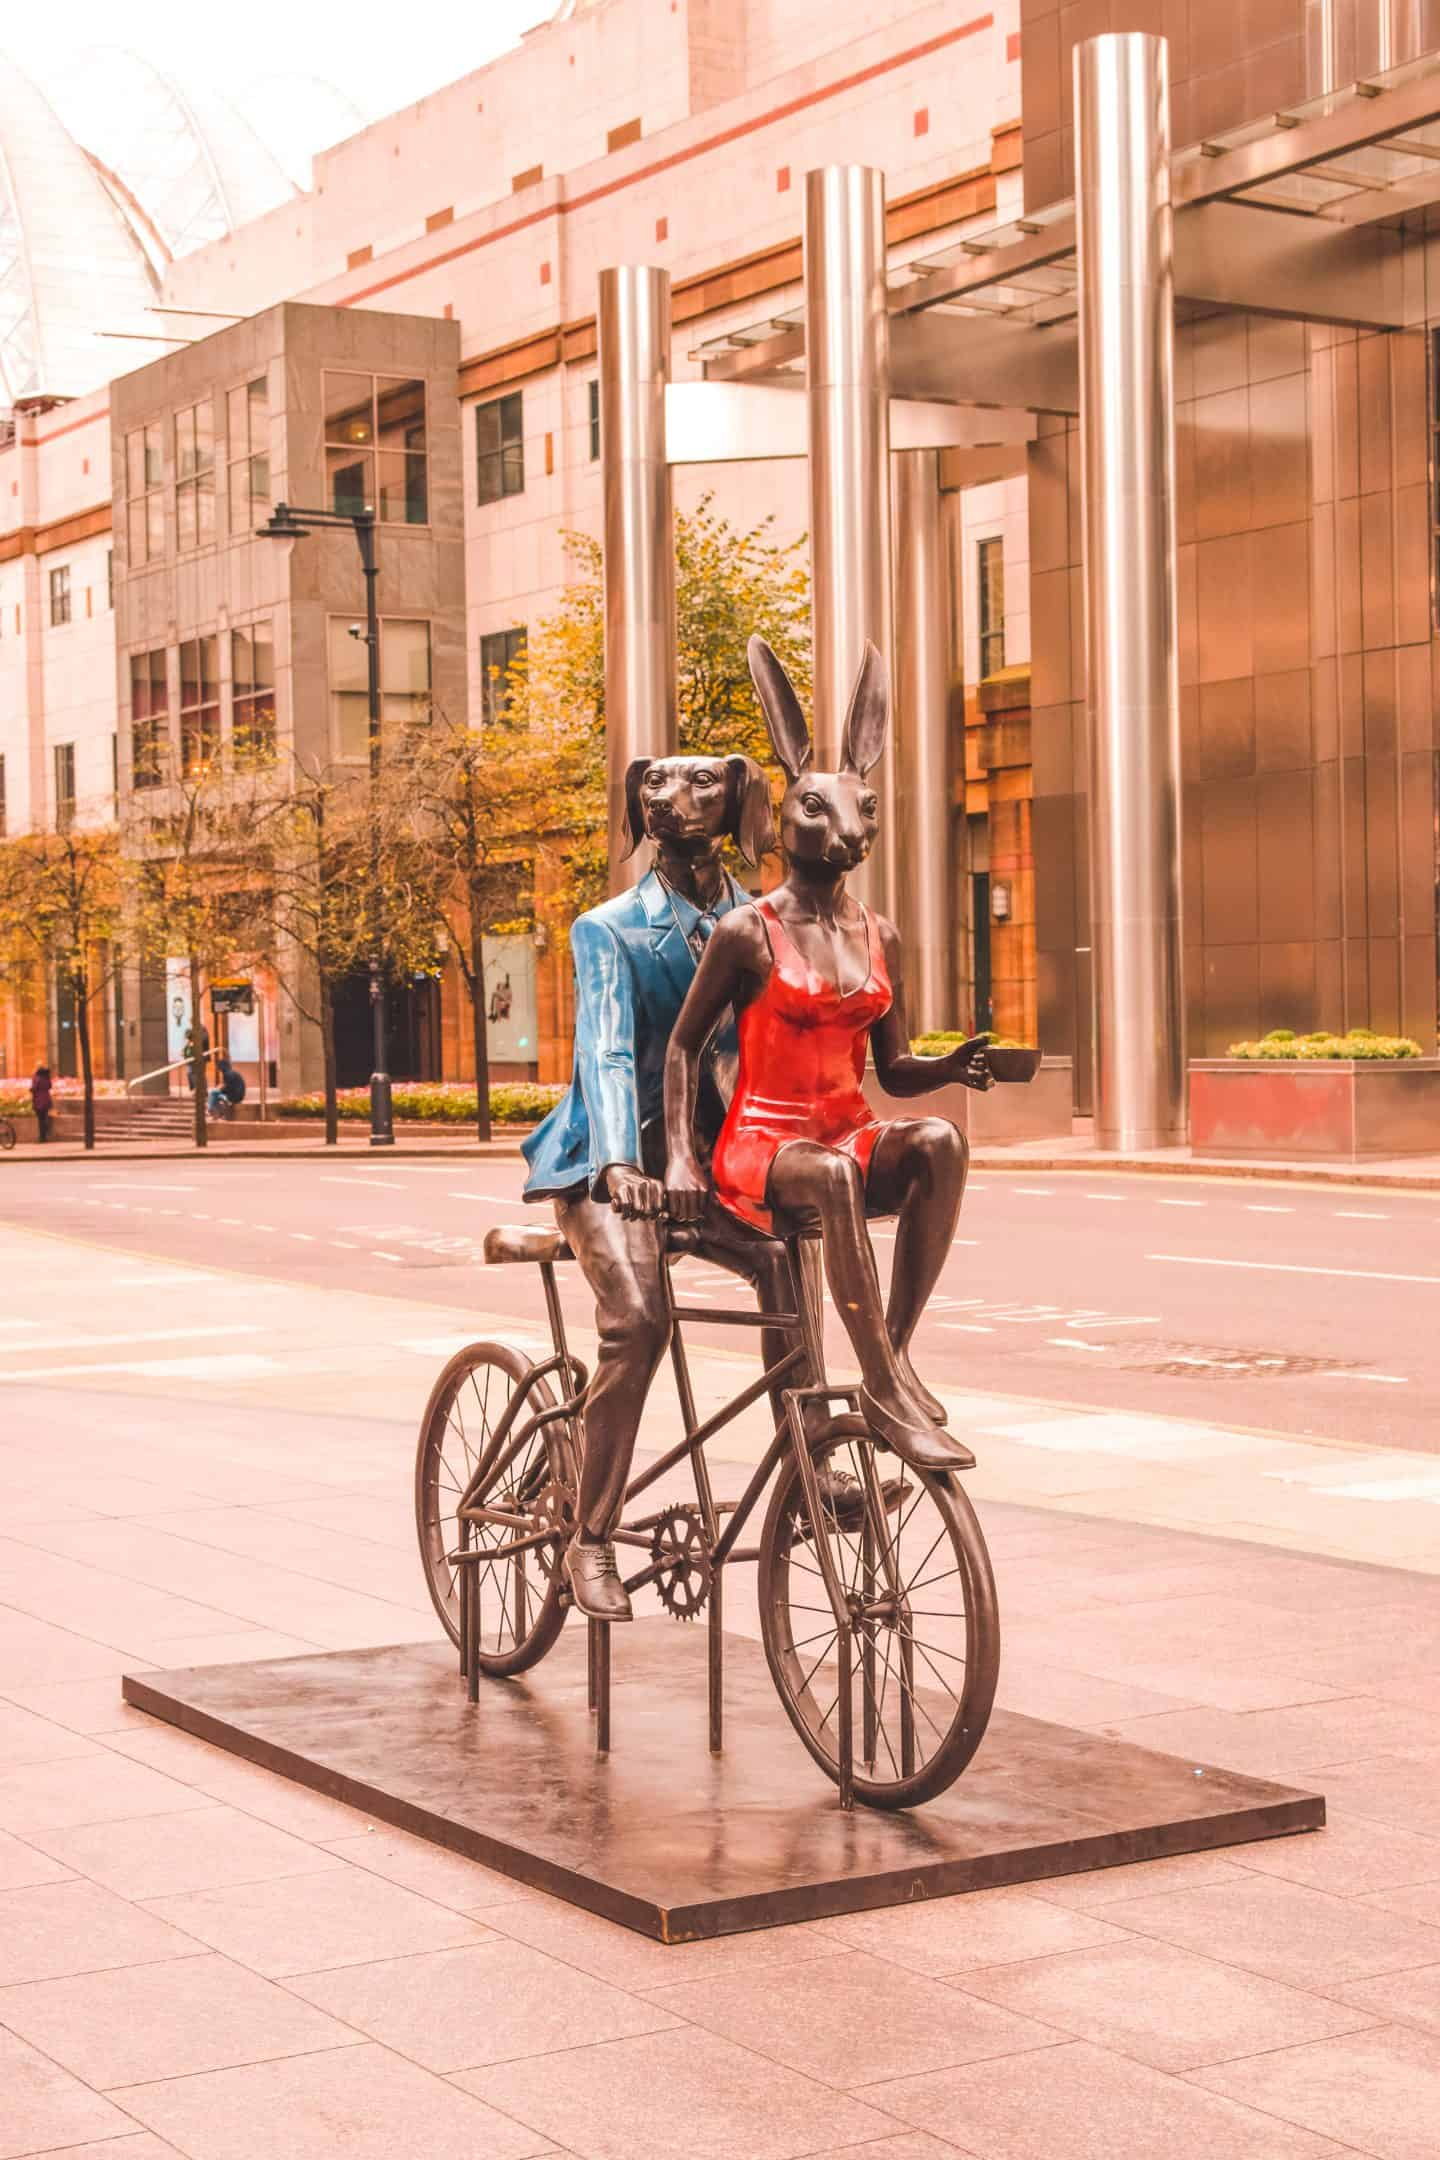 Cat and Dog Art in Canary Wharf: Places to go in Canary Wharf